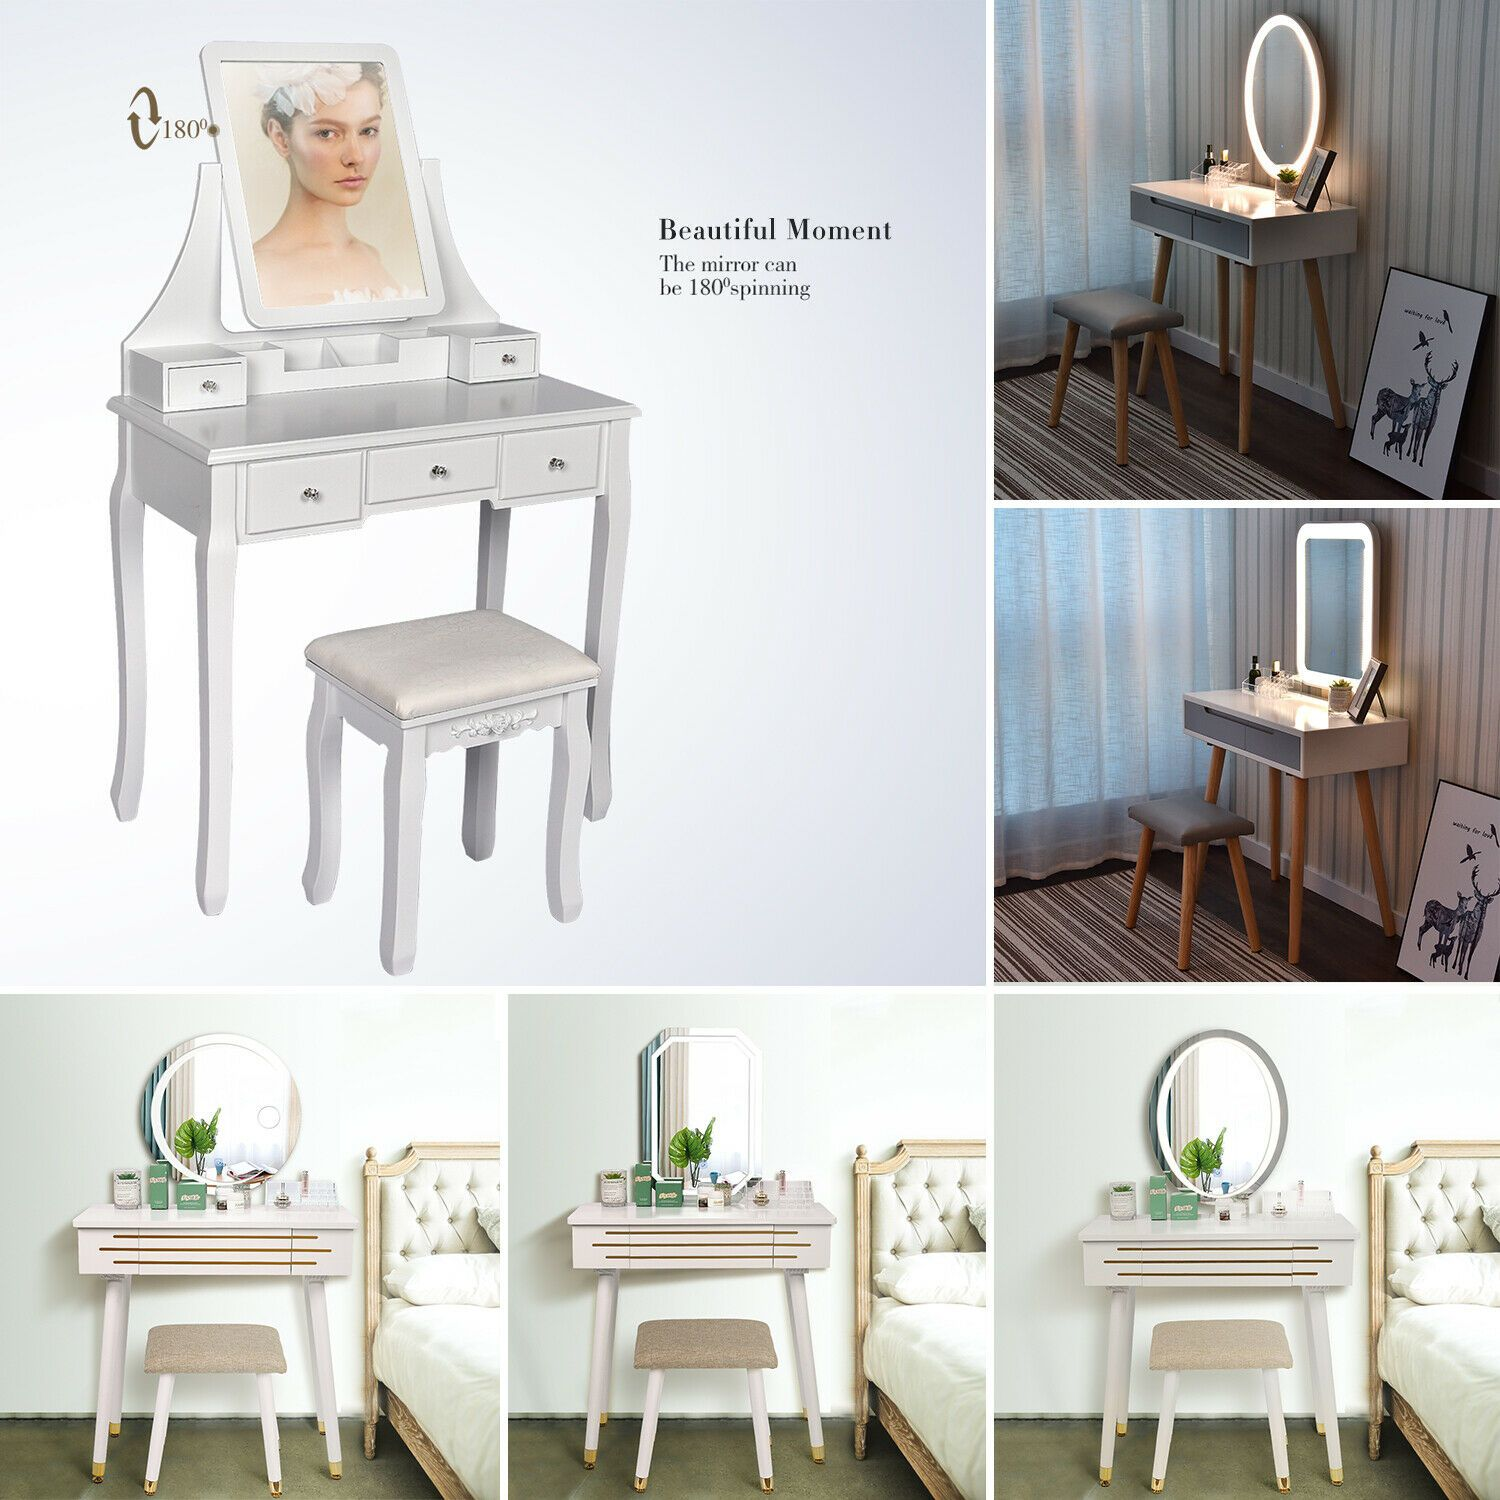 Details about Led Mirror Makeup Vanity Table Dressing